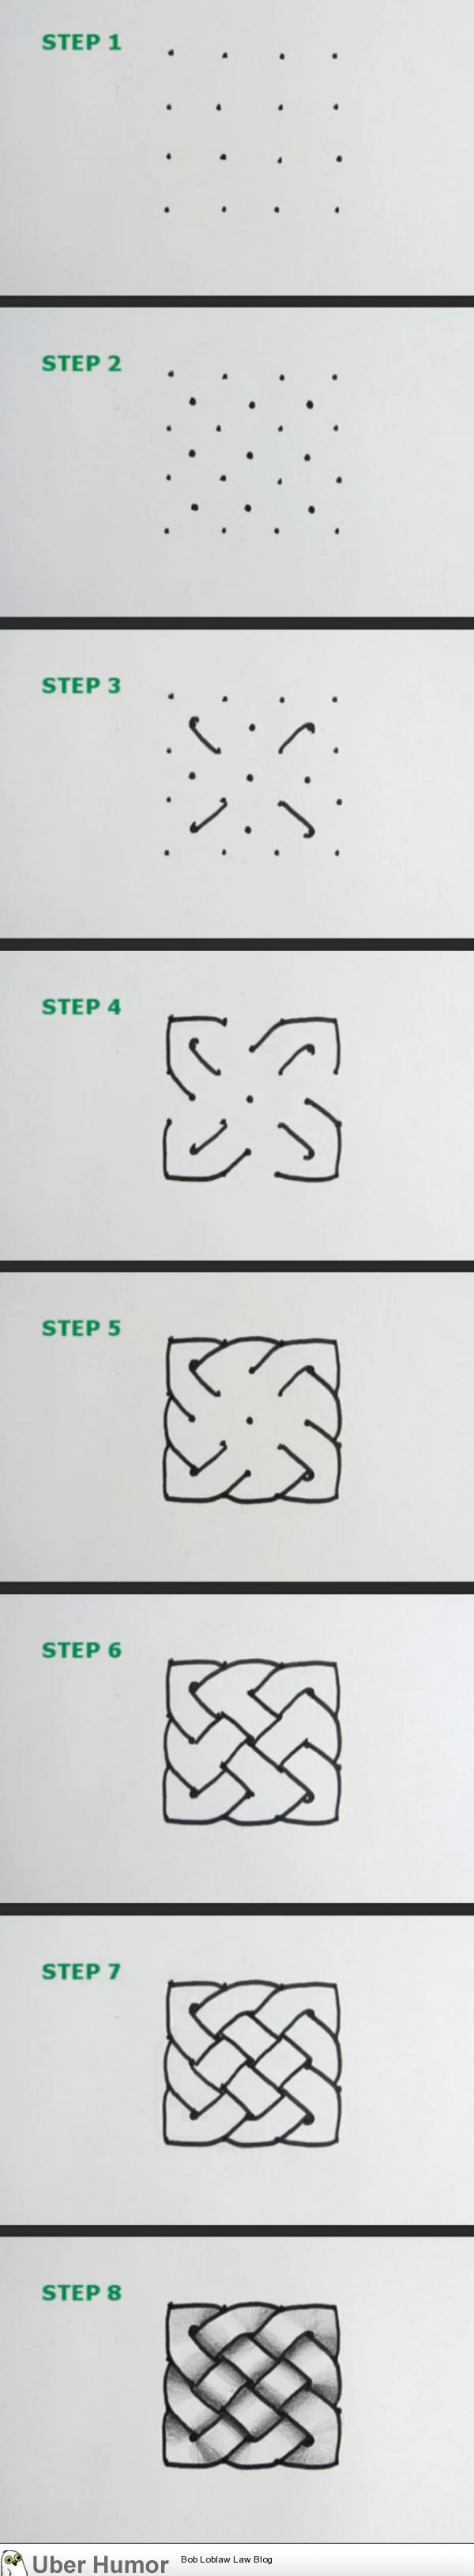 How To Draw A Simple Celtic Knot Funny Pictures Quotes Pics Photos Images Videos Of Really Very Cute Animals